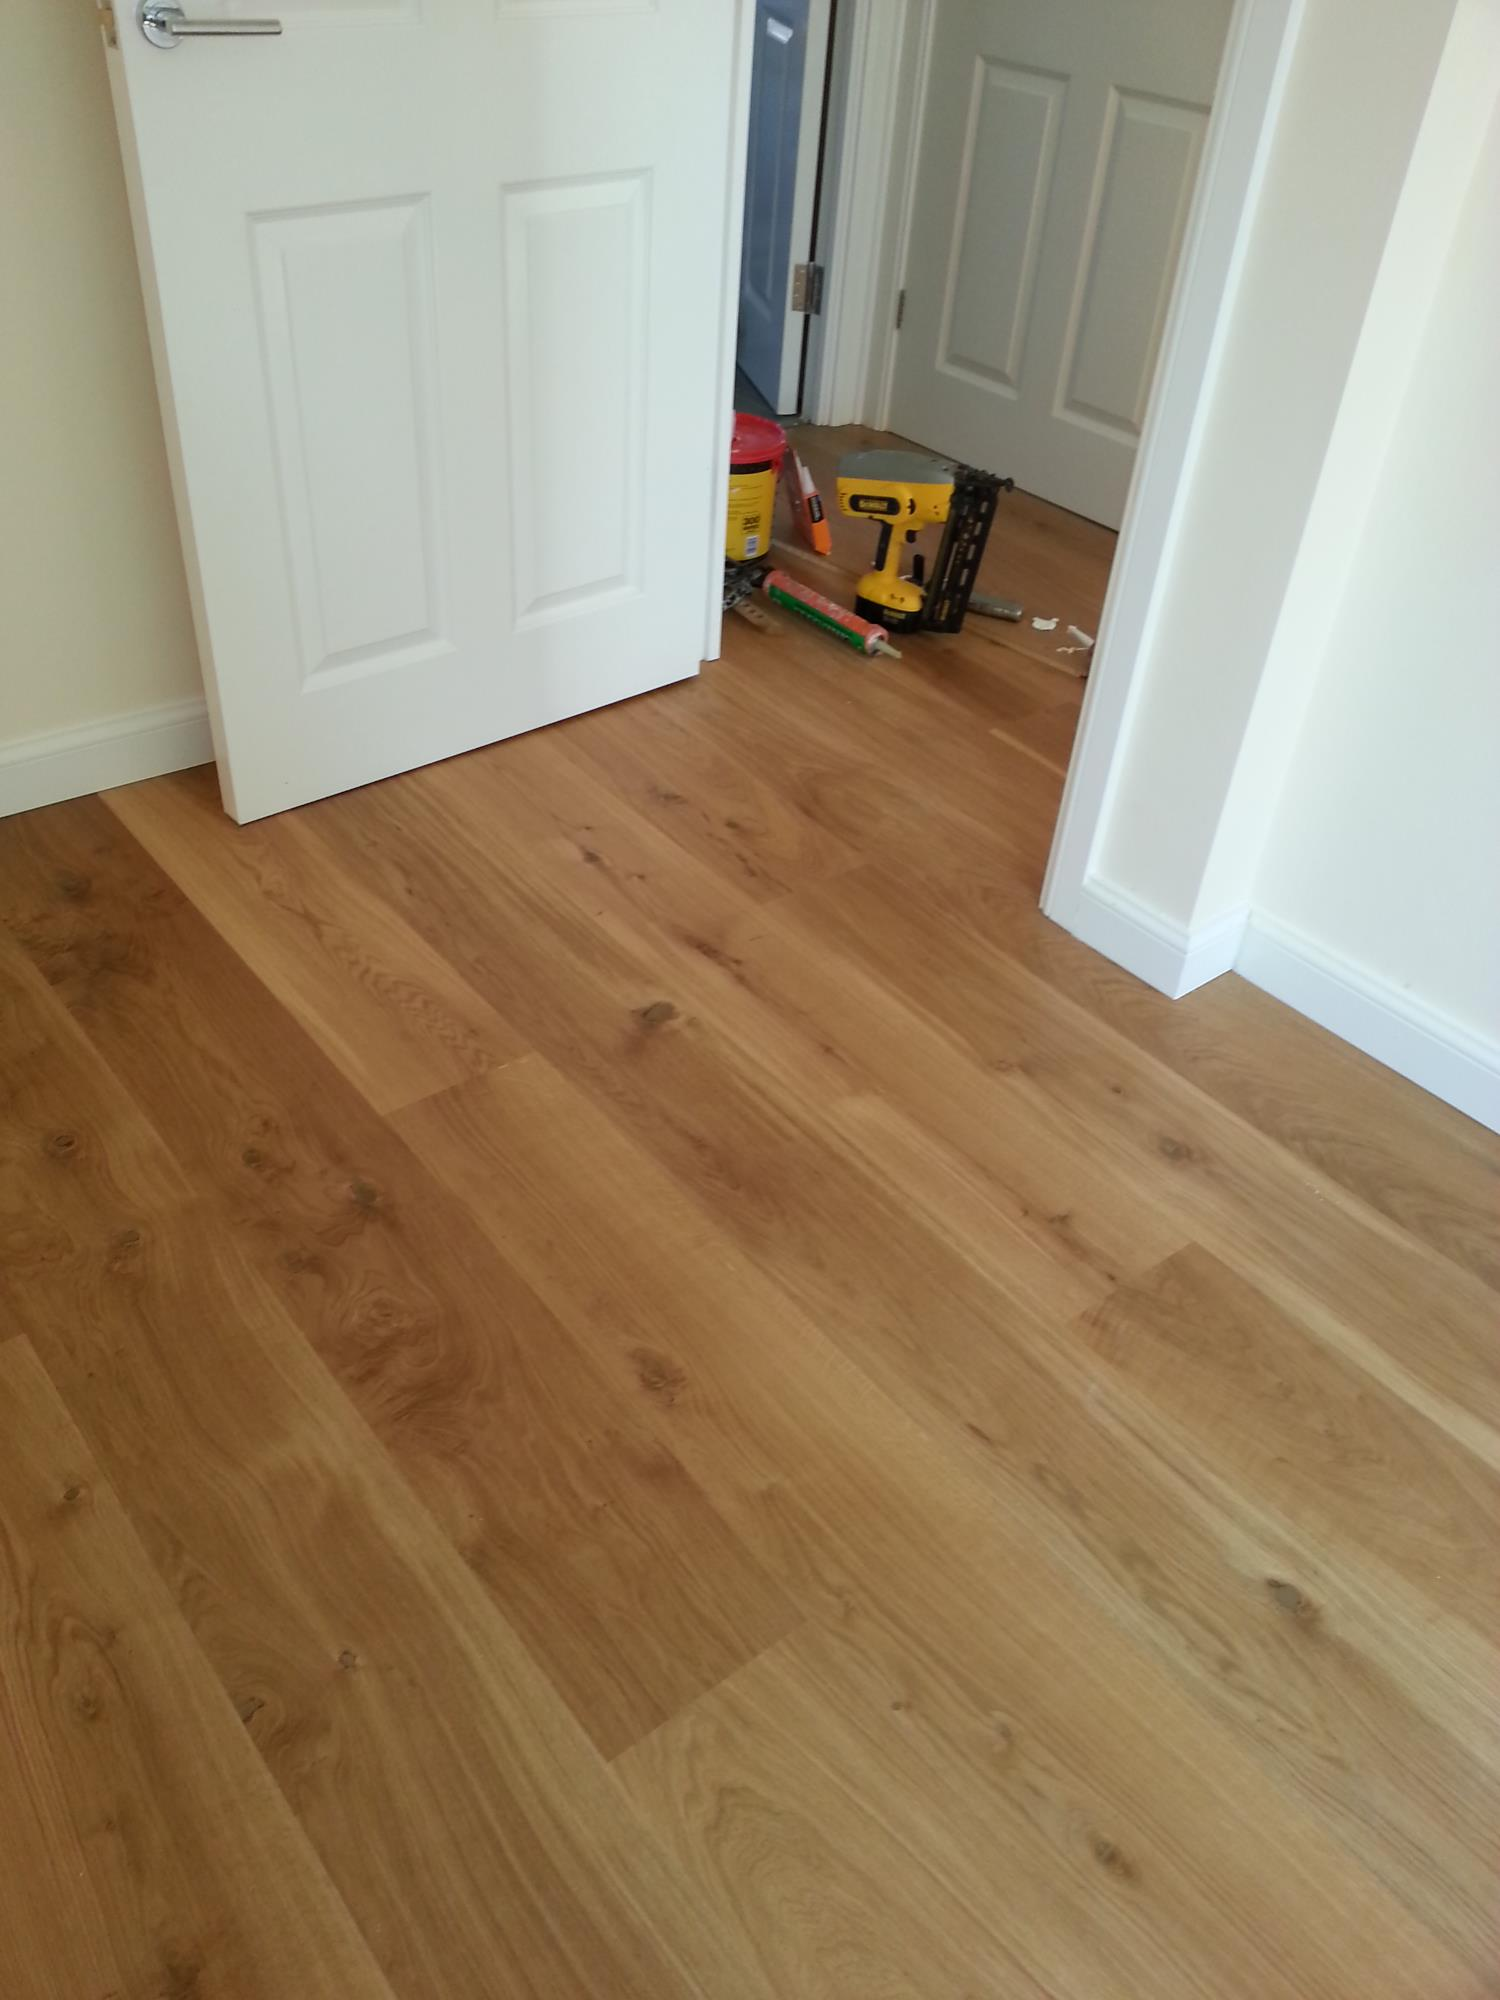 Jjp wood flooring company home Wood floor installer